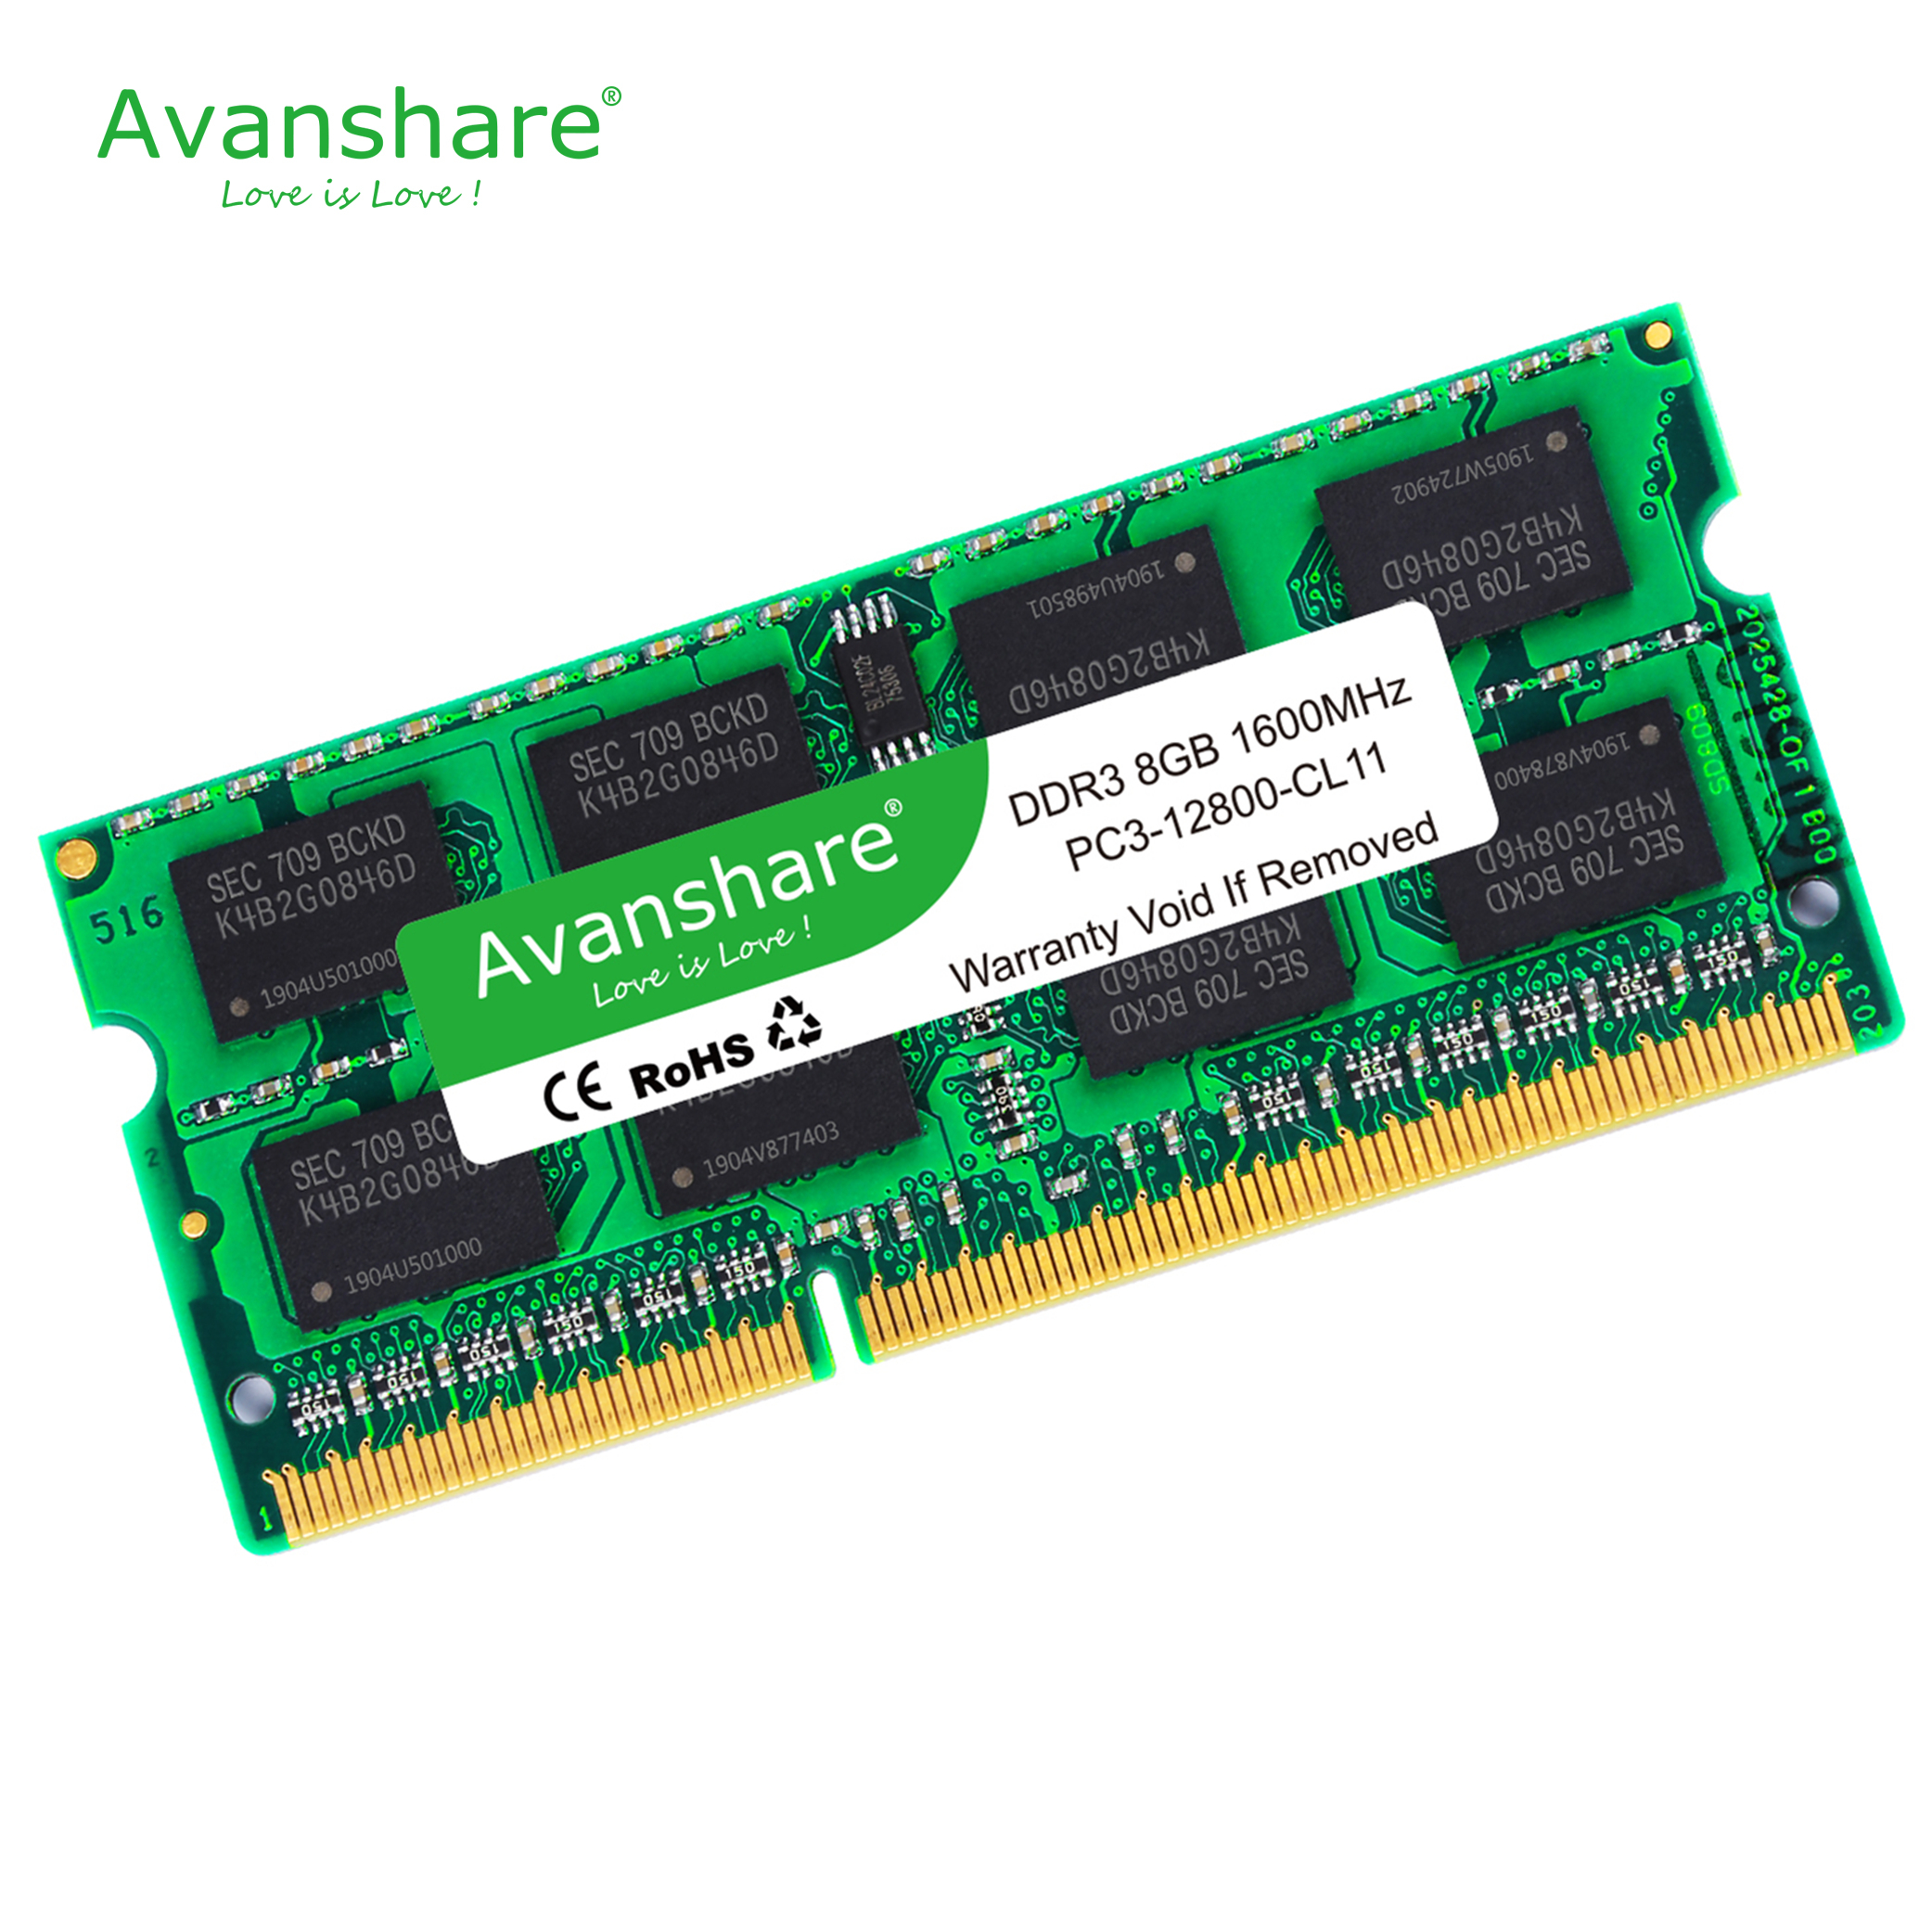 Speicher <font><b>ddr3</b></font> 8gb für laptop 1600MHz sodimm macbook <font><b>ram</b></font> ddr3l 1600 kompatibel <font><b>ddr3</b></font> laptop 4gb 1333MHz sdram 1066mhz durch Avanshare image